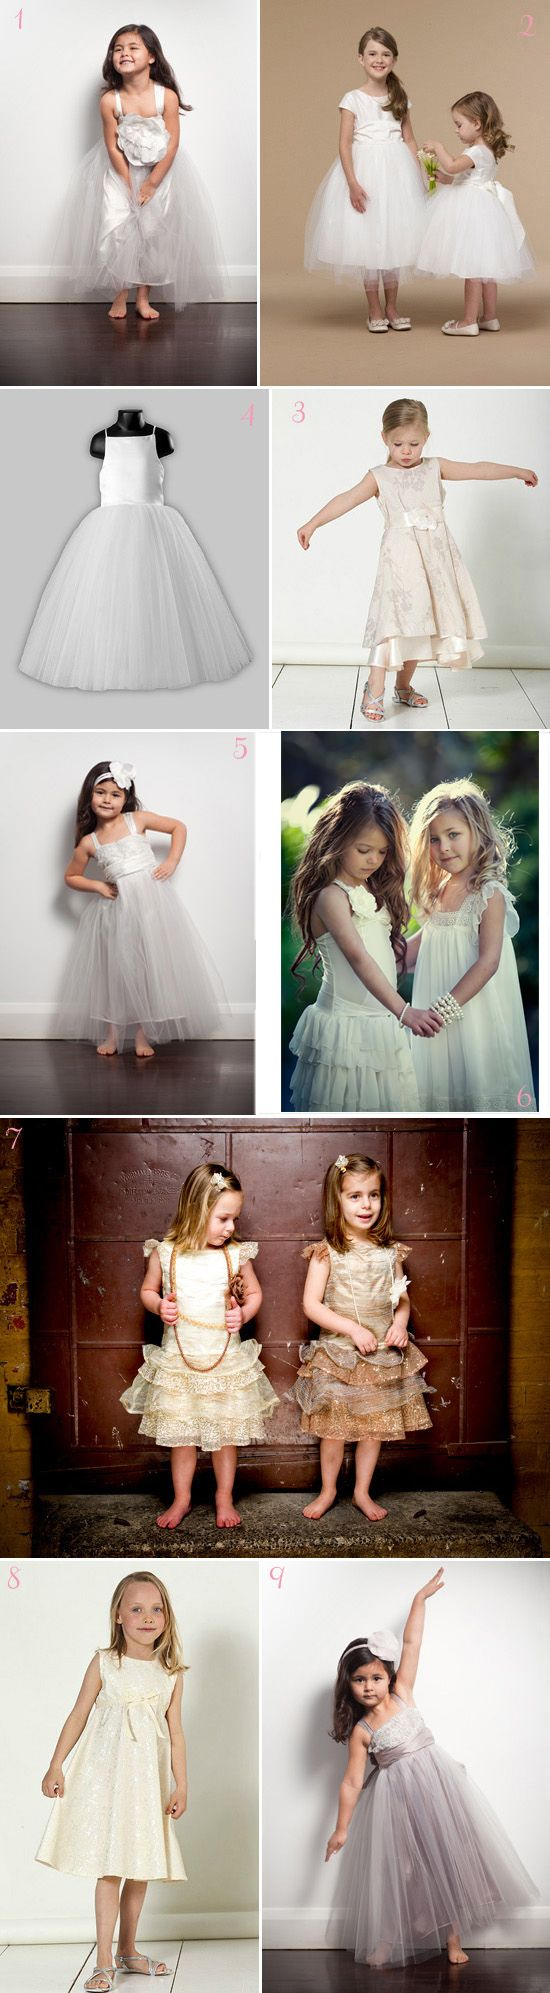 best gowns images on pinterest bridesmaids flower girls and